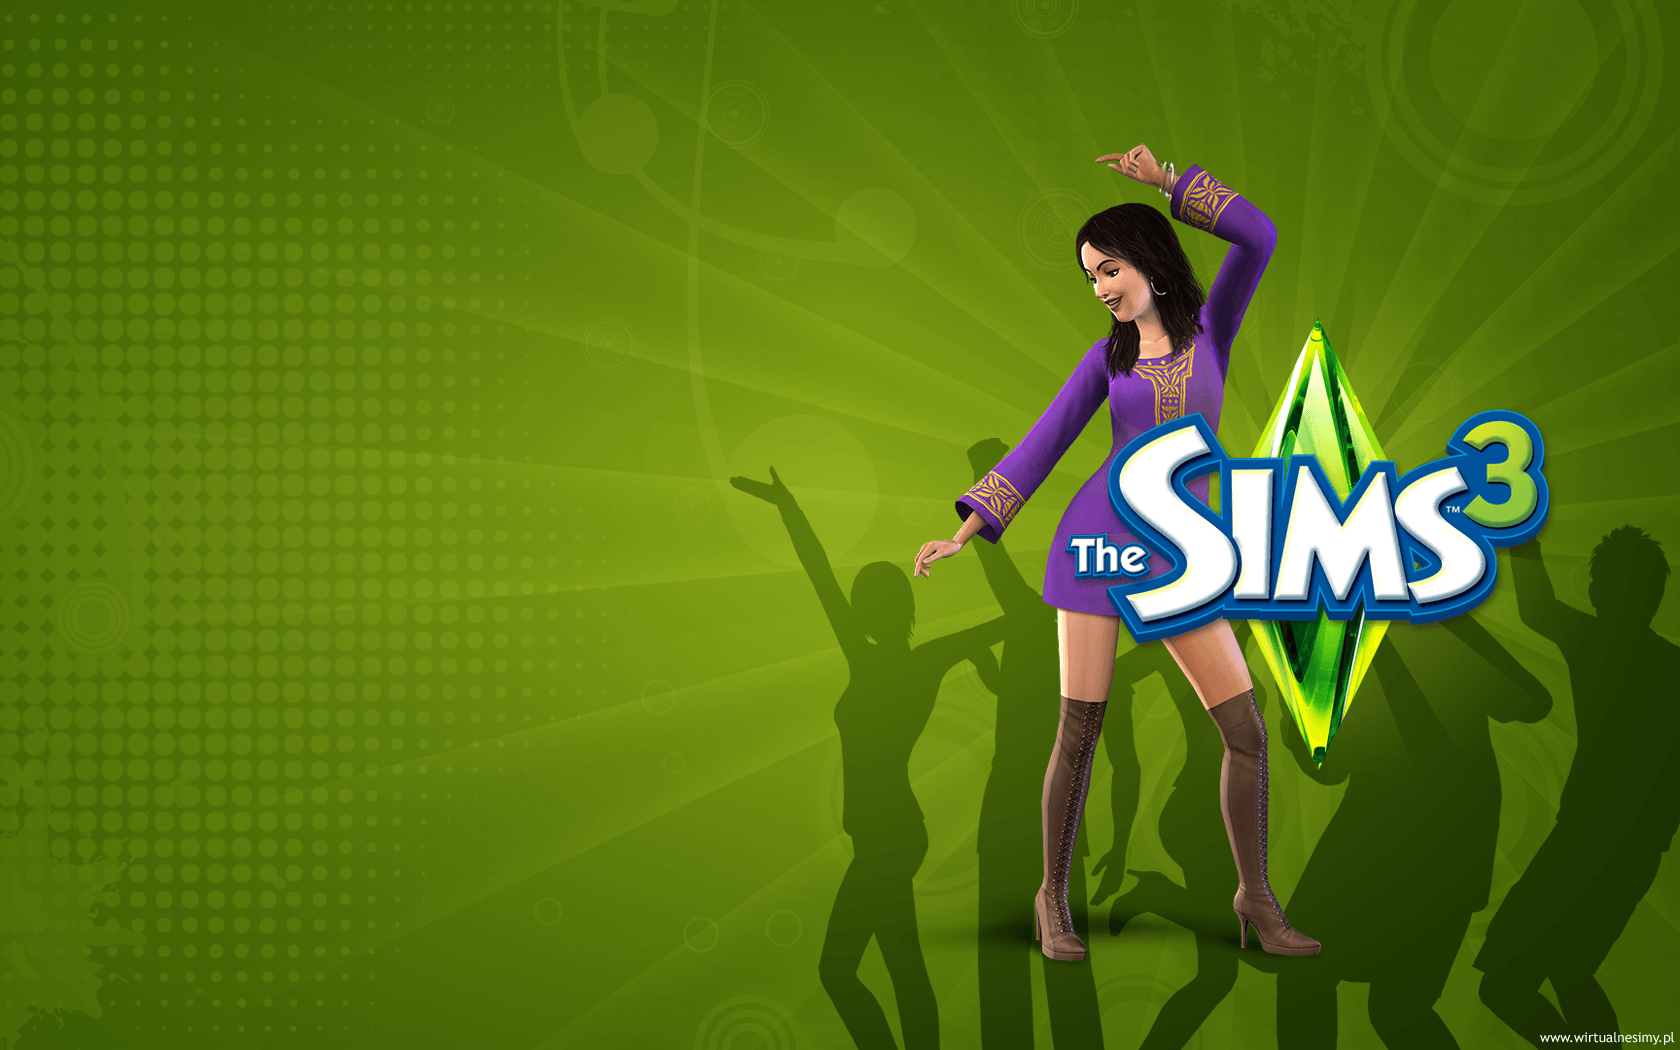 The Sims 3 Wallpapers - WallpaperSafari